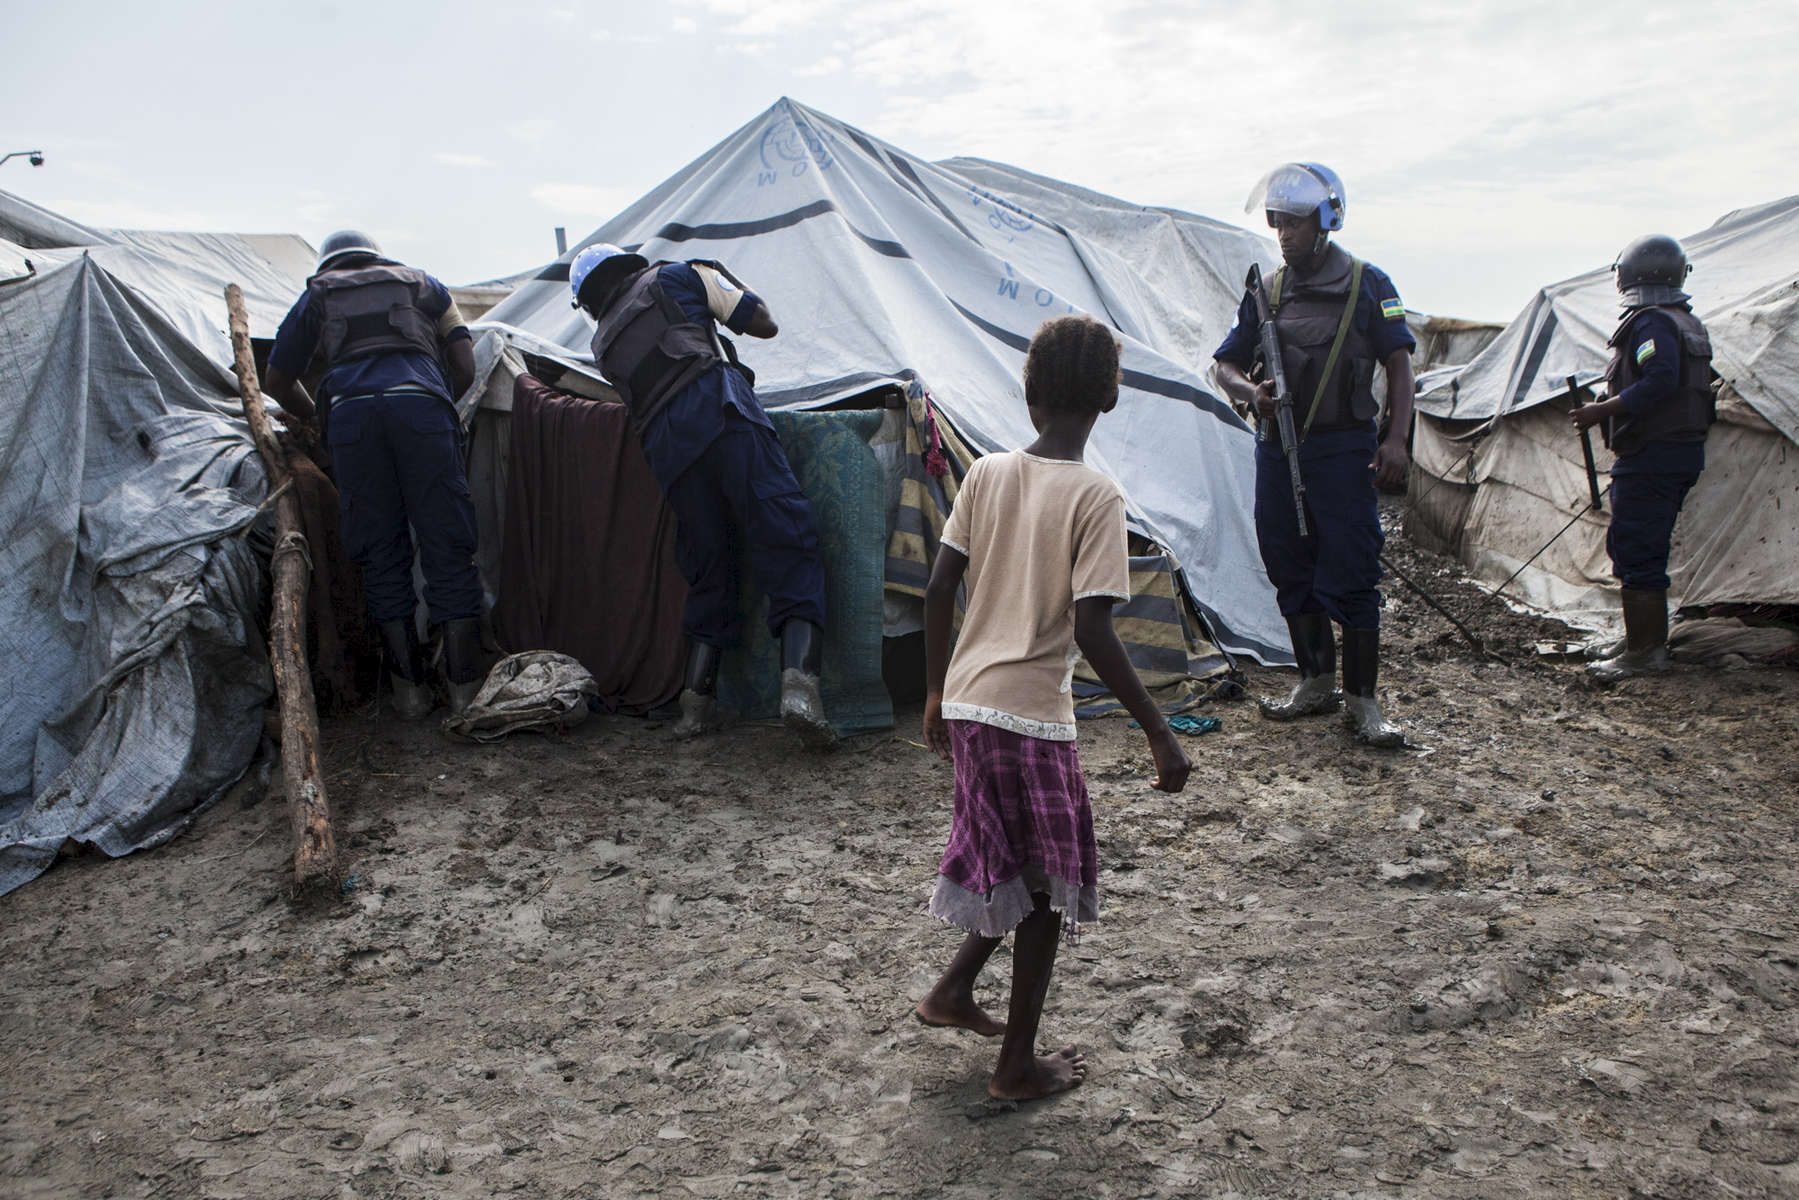 A young girl watches as members of the United Nations Police, UNPOL, searches shelters for contraband in the Protection of Civilians (POC) site at the United Nations Mission in South Sudan (UNMISS) compound in Malakal, South Sudan on Friday, July 15, 2016. The Malakal POC site houses over 32,000 displaced people mainly from the Shilluk and Nuer tribes. In February of this year, members of the Dinka tribe, who resided in the camp at the time, carried out a coordinated attack within the site leading to the destruction of hundreds of shelters and many deaths. Since then, most members of the Dinka tribe have fled to Malakal town where they occupy the homes of those still displaced. The UN has assured the displaced people that increased security measures around the camp will protect them from any further attack. Most of the displace are not convinced.